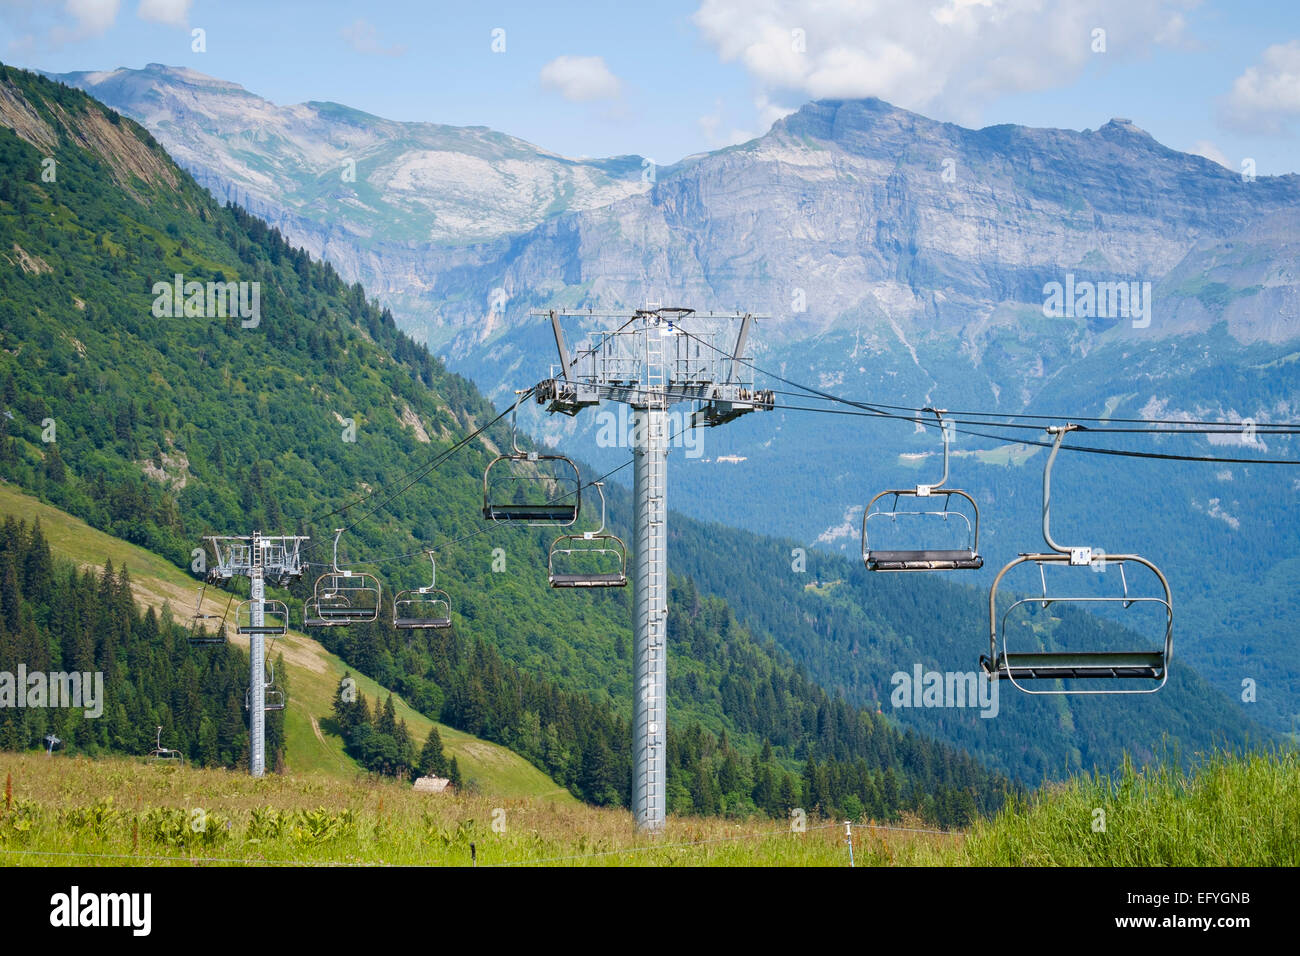 Ski lift or Chairlift overlooking the Chamonix Valley from Bellevue, French Alps, France - Stock Image